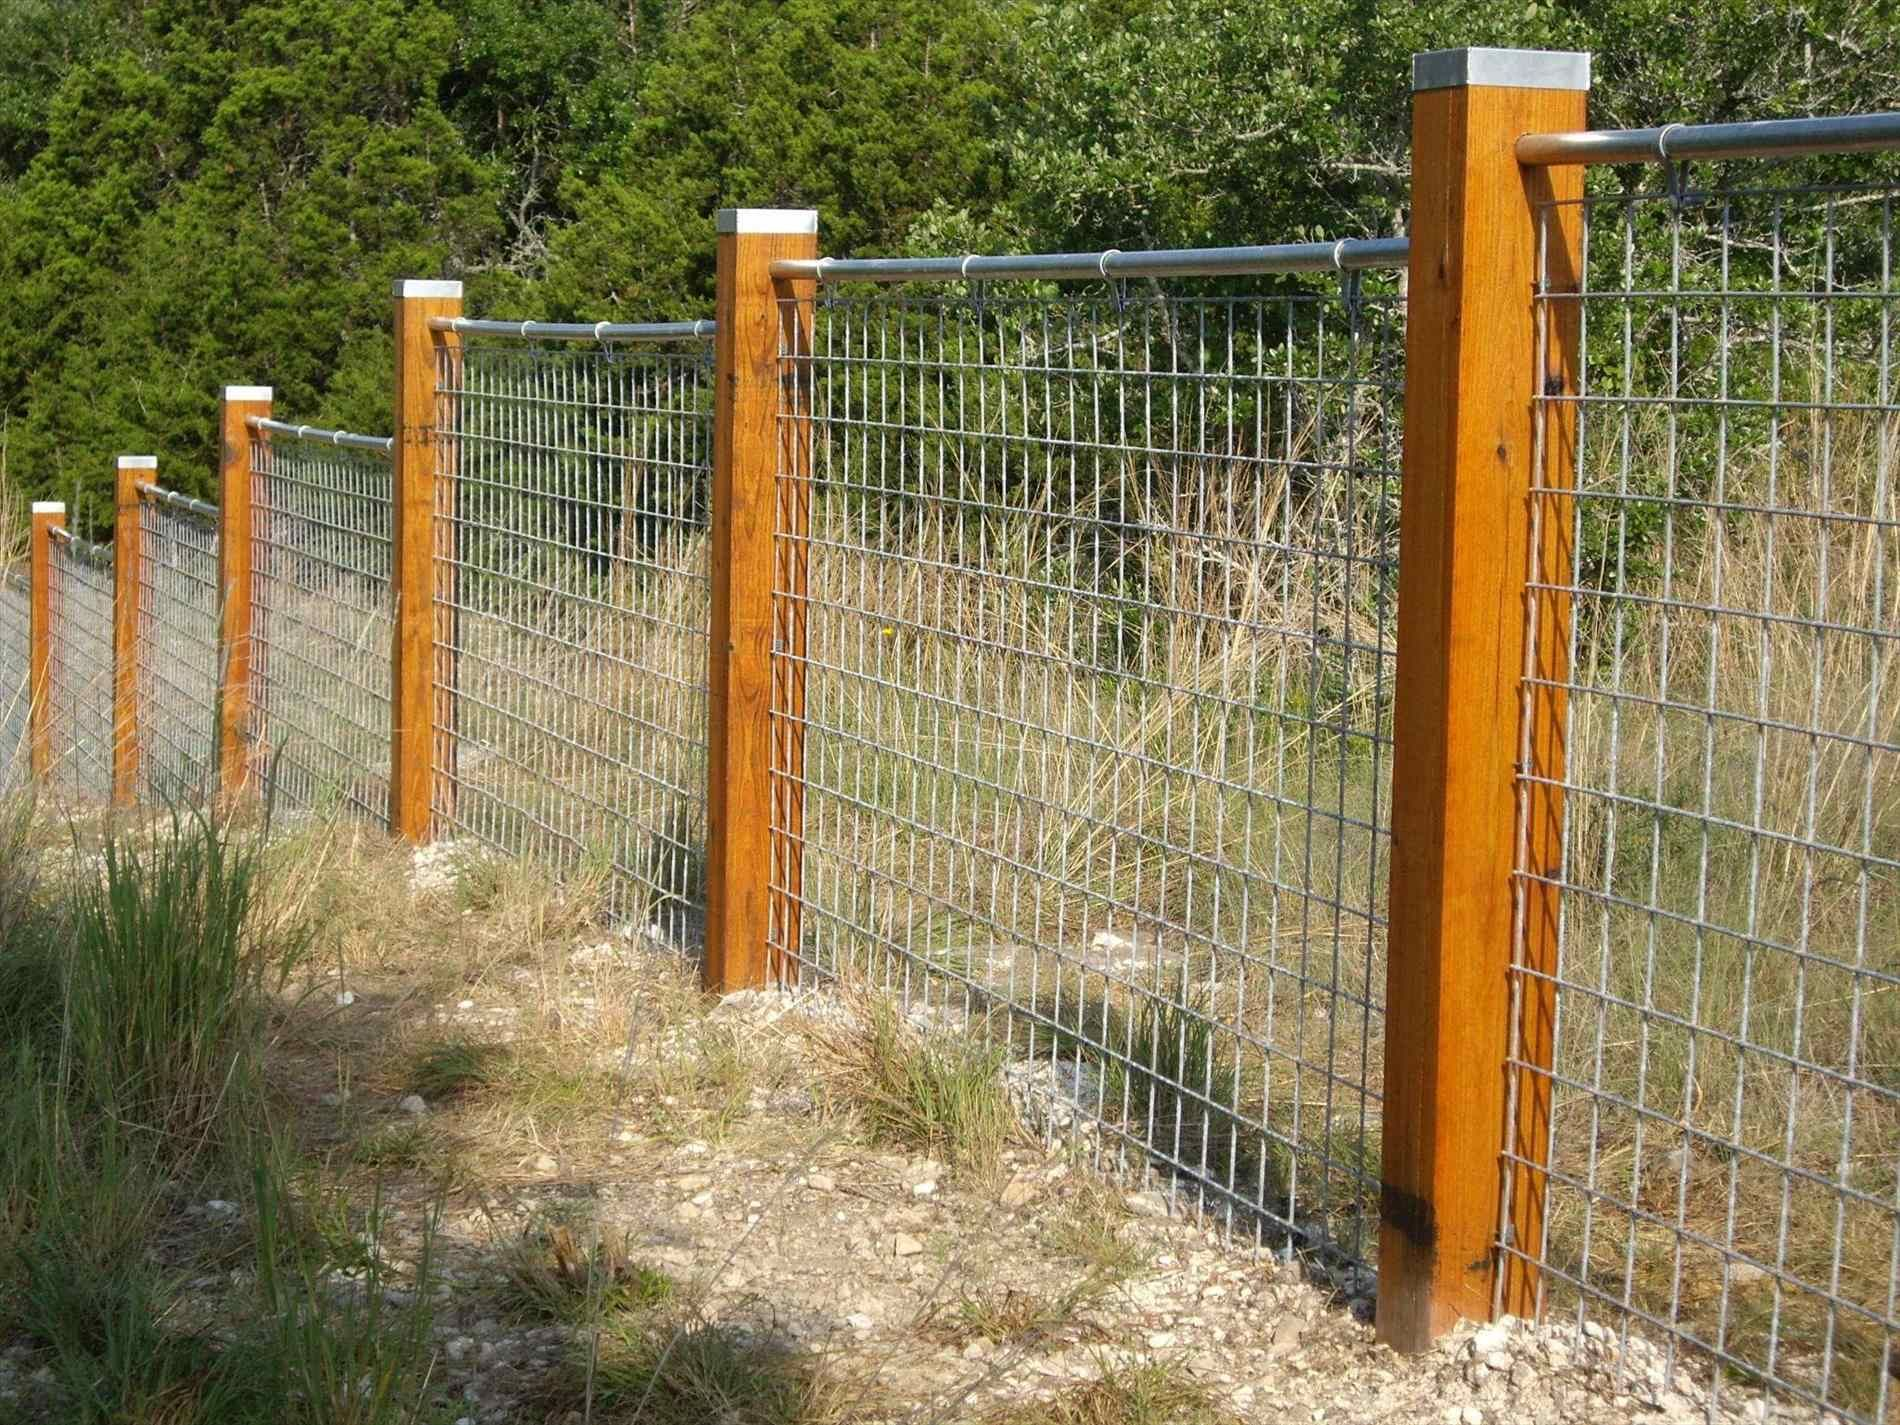 U Installing Wood And Wire Fence Cost Chain Link Fence With Wood Posts U Post And Rail Welded Wire Styles By Prot Fence Design Wire Fence Panels Hog Wire Fence